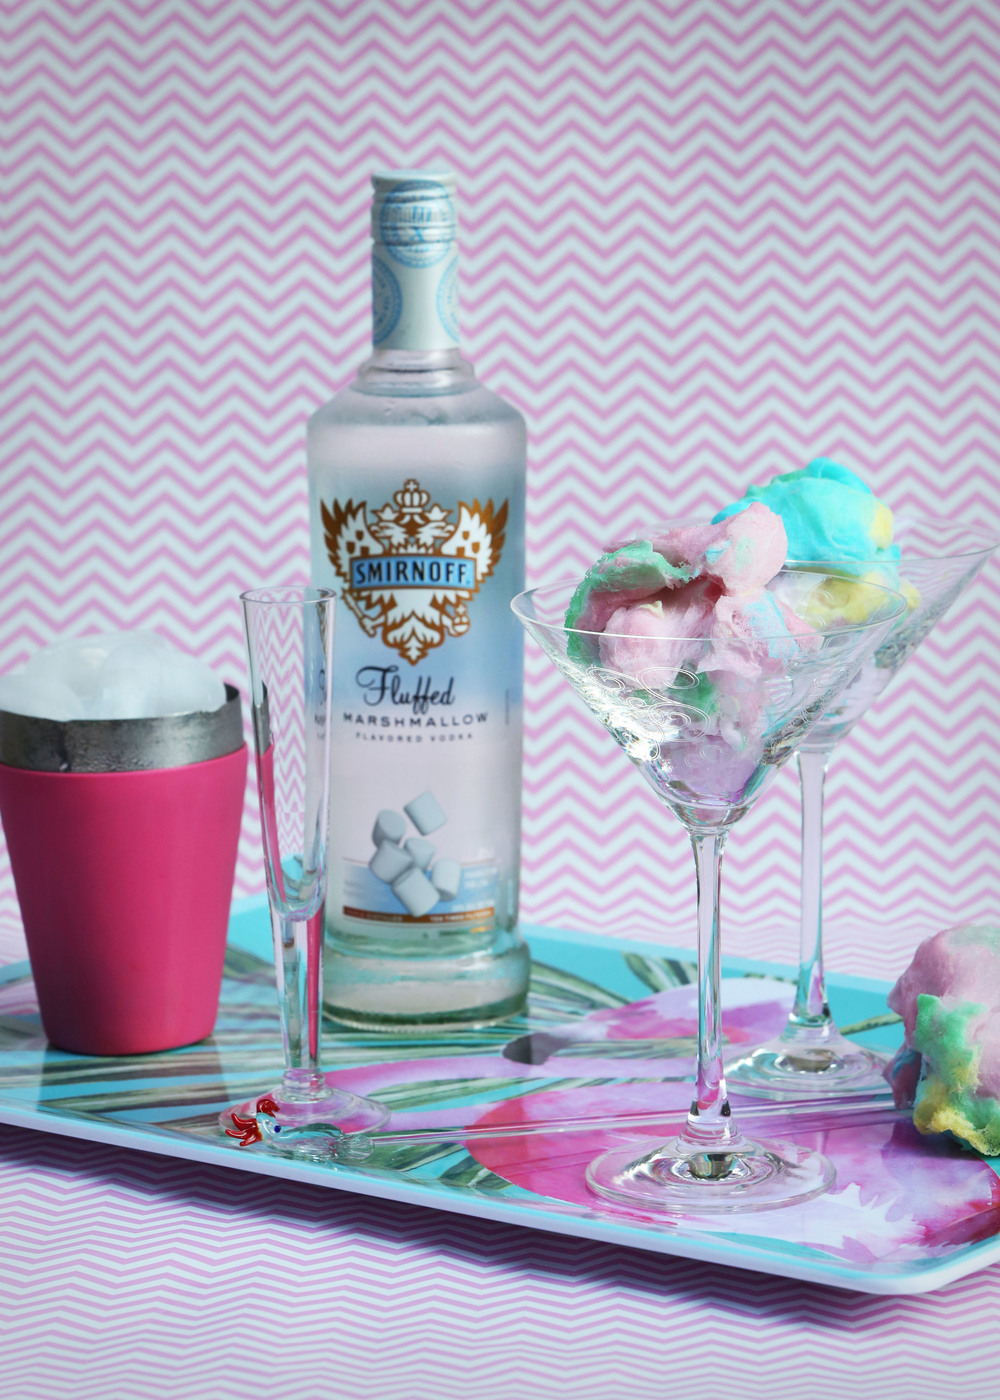 Smirnoff_CottonCandy_Martini_1.jpg